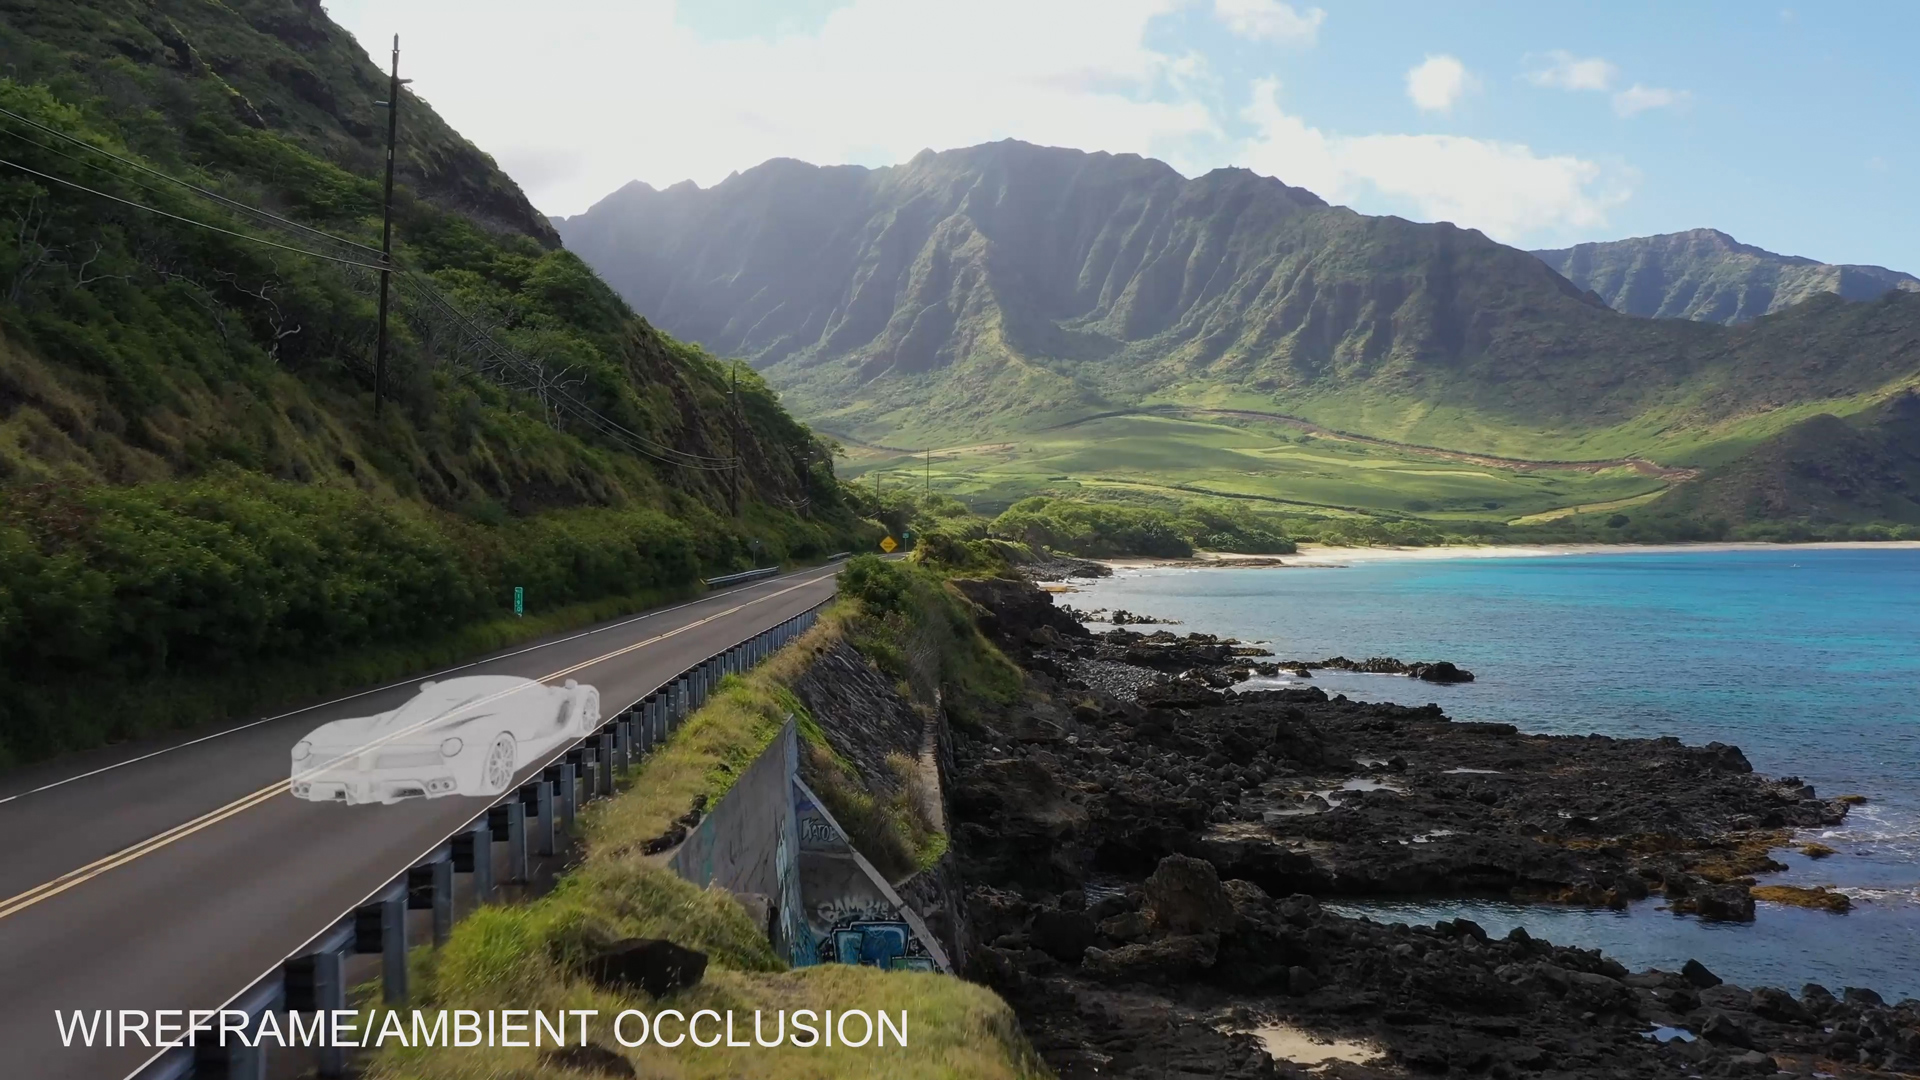 A Ferrari wireframe is composited into a scenic drive on the coastal highway using FasTrack's AI-assisted camera tracking.